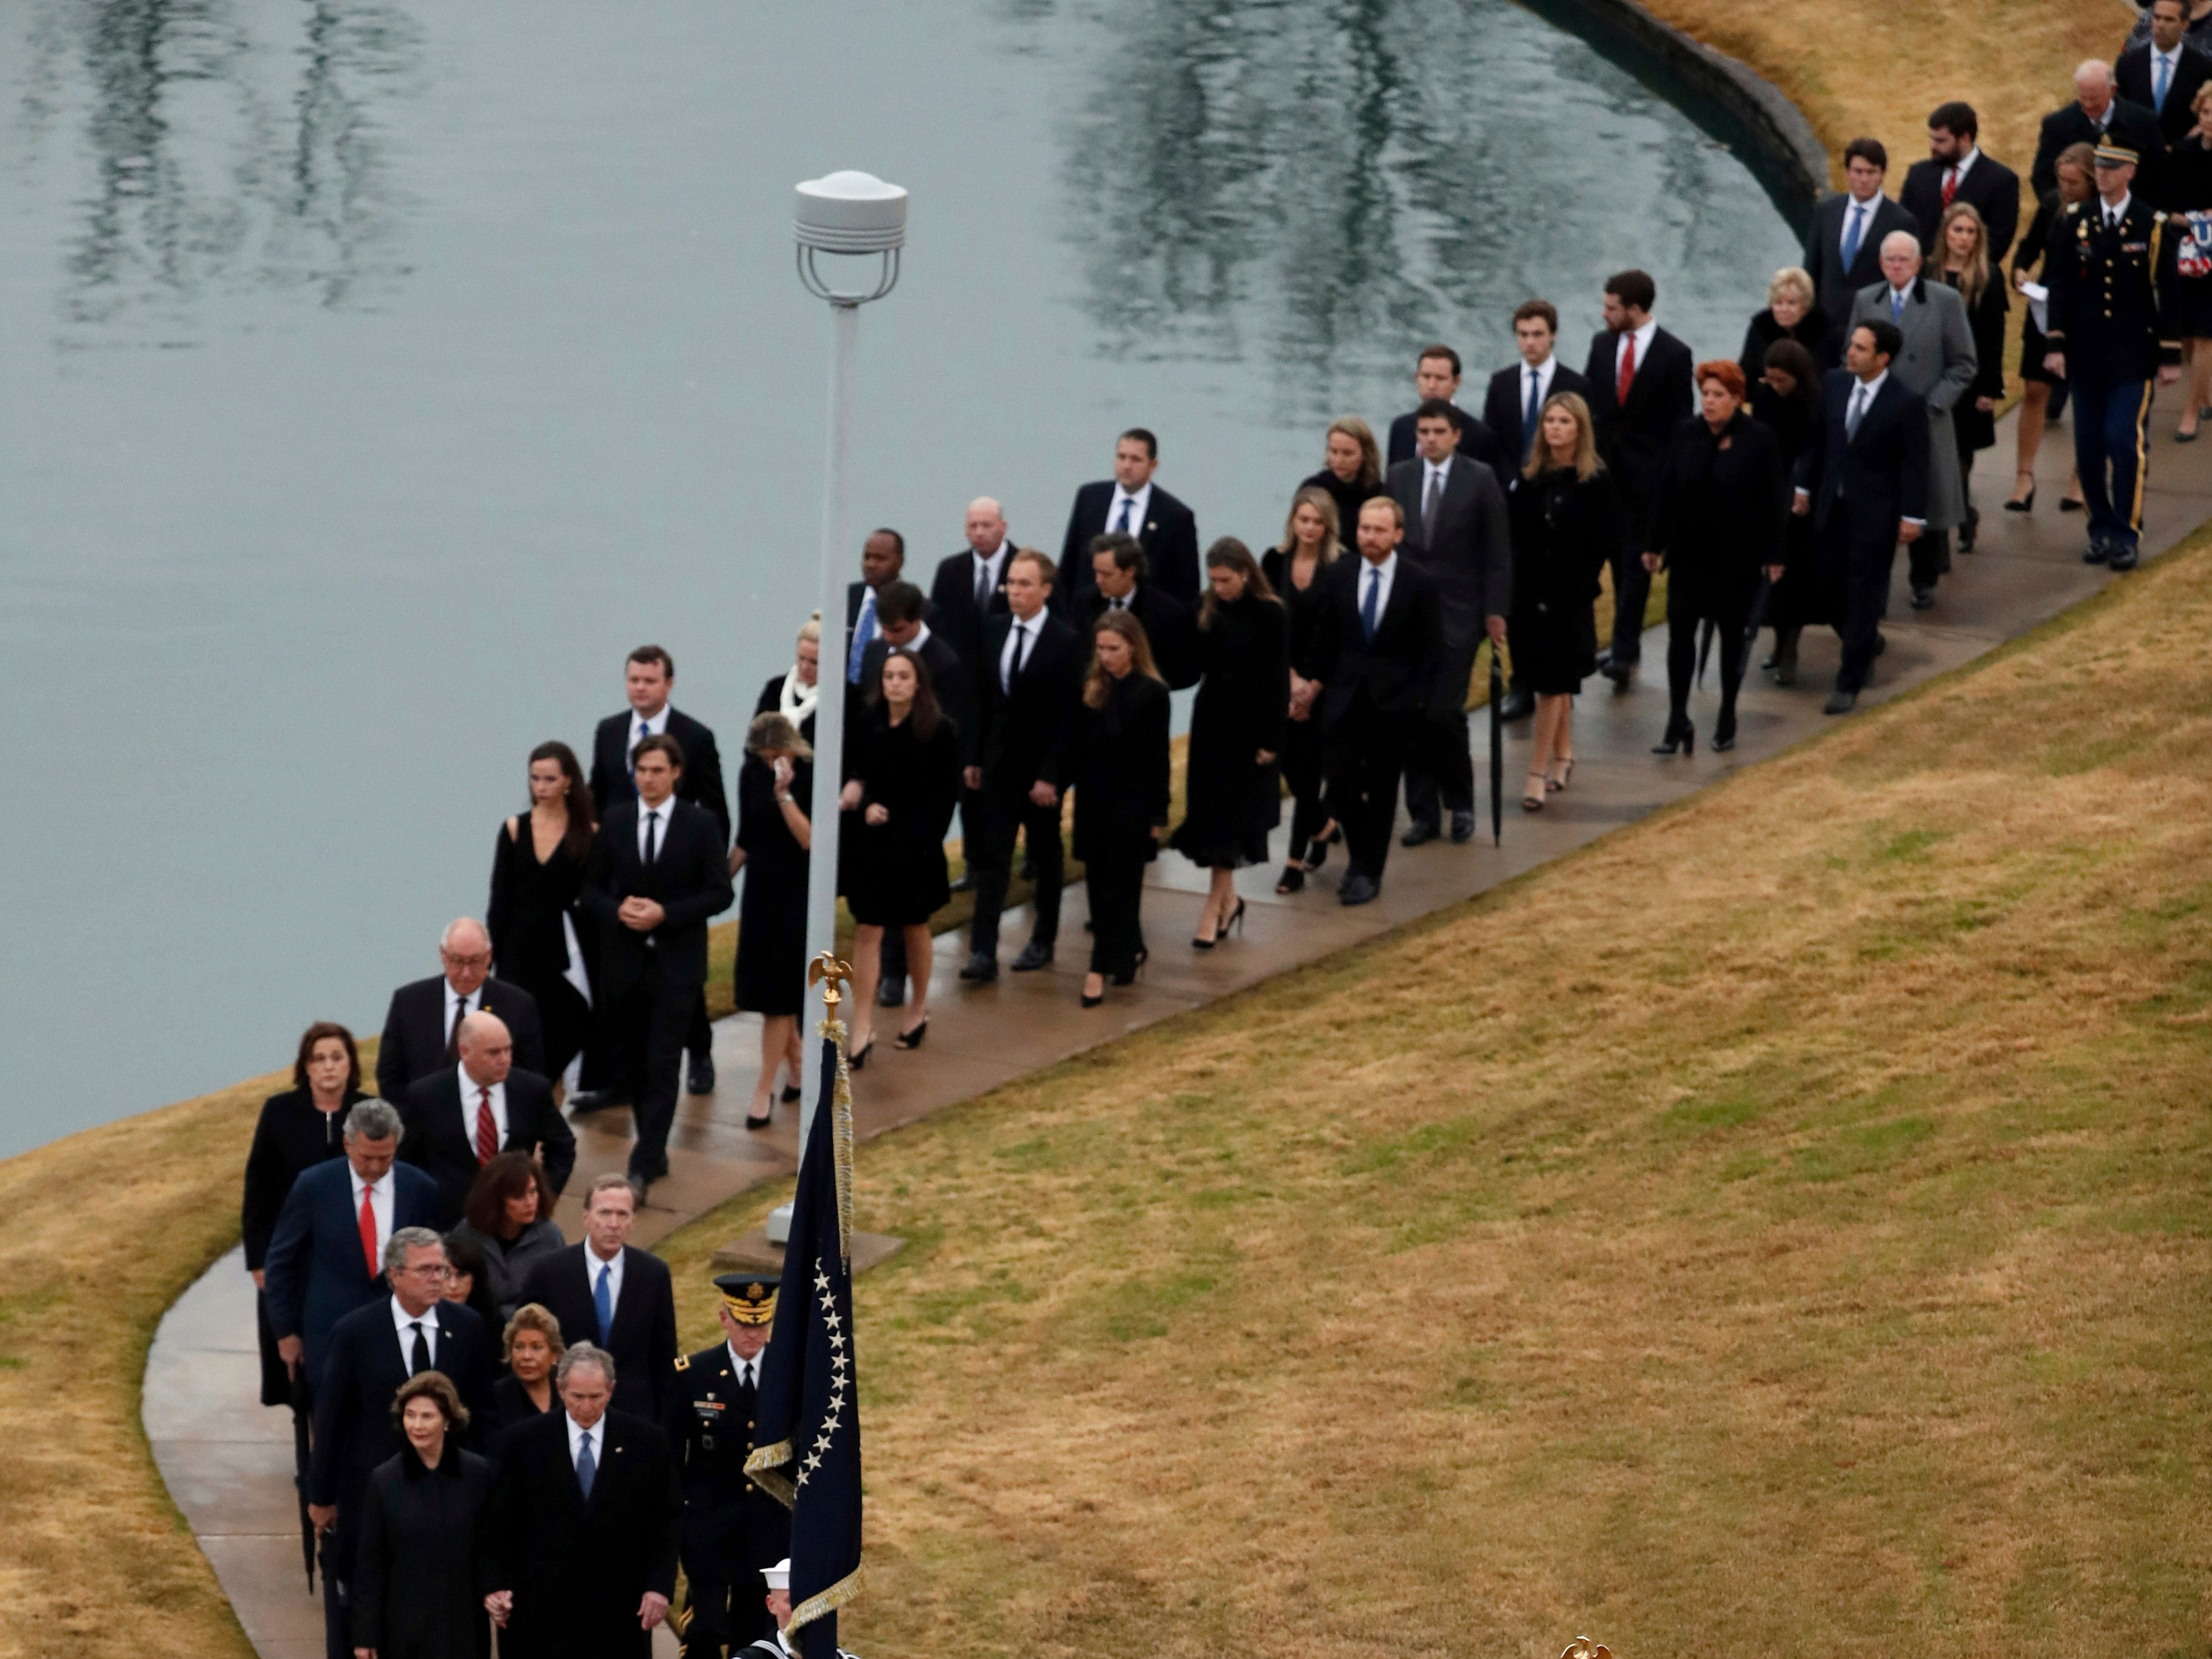 The flag-draped casket of former President George H.W. Bush is carried by a joint services military honor guard followed by family members the George H.W. Bush Presidential Library and Museum Thursday, Dec. 6, 2018, in College Station, Texas.